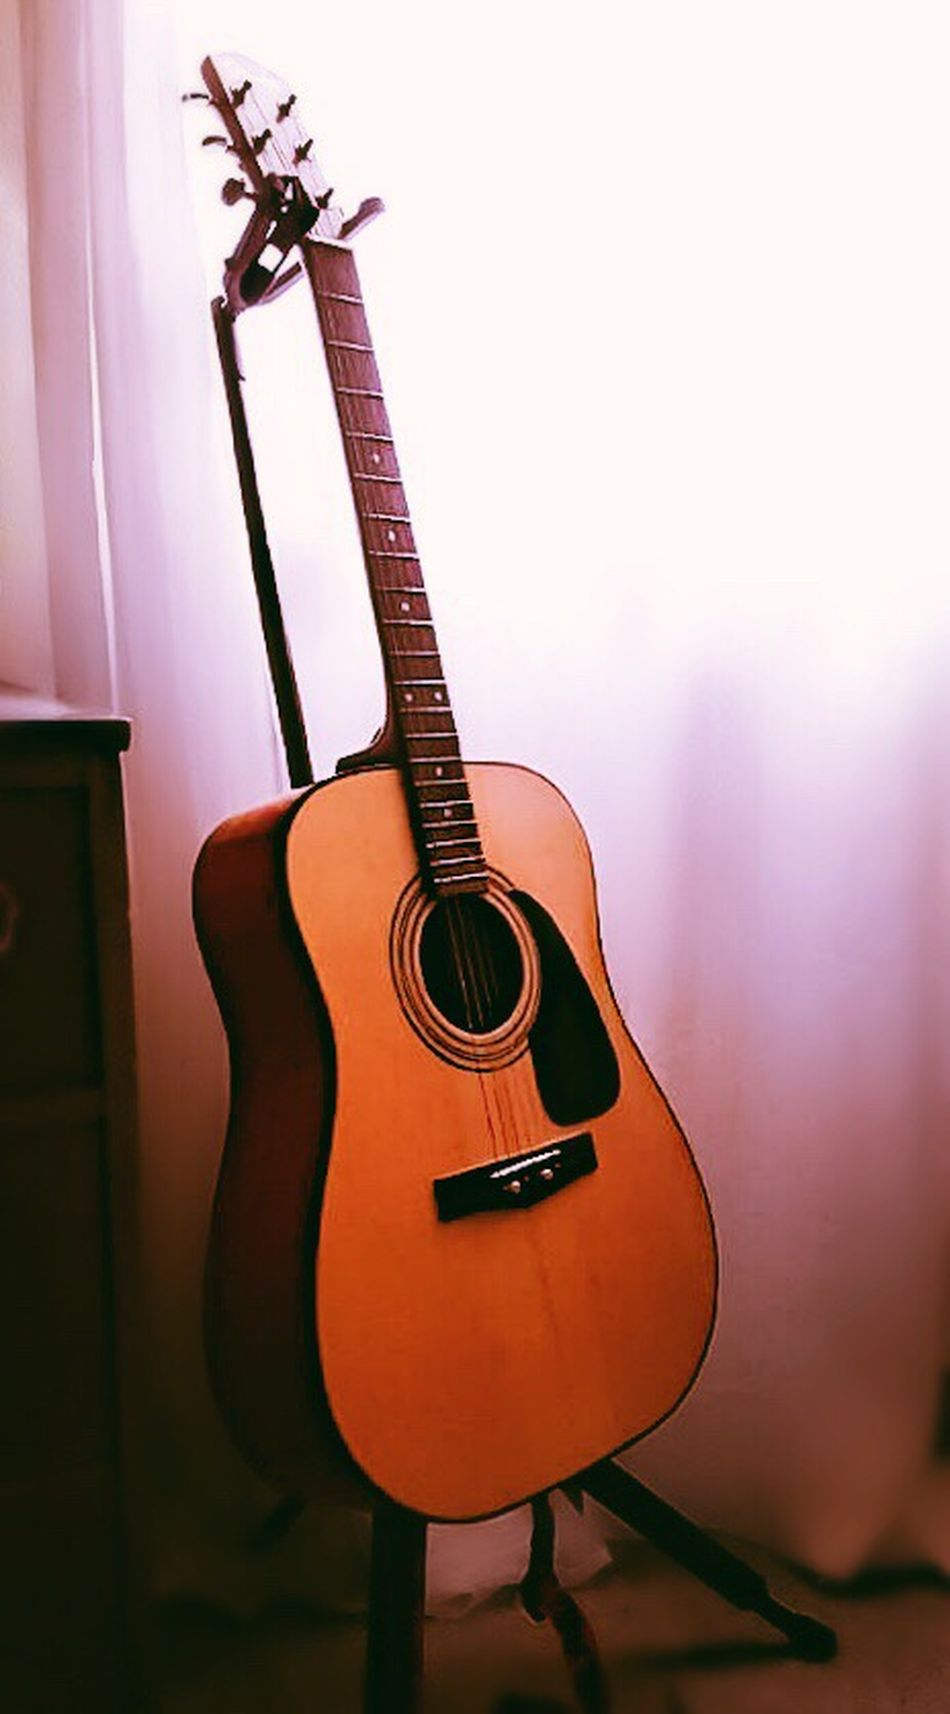 Strumming My Guitar Fender Acoustic Steel Strings Bright Light Filtered Through The Window Cream Curtain Lit From The Sunlight My Music Music Room At Home :) I Love This Place <3 Best Shots EyeEm My Unique Style Beautiful Day Where I Live EyeEm Gallery Just Taking Pictures Sun Is High Hot Outside Airconditioned Cool Inside Room Relaxing Space This Is Where I Play And Write